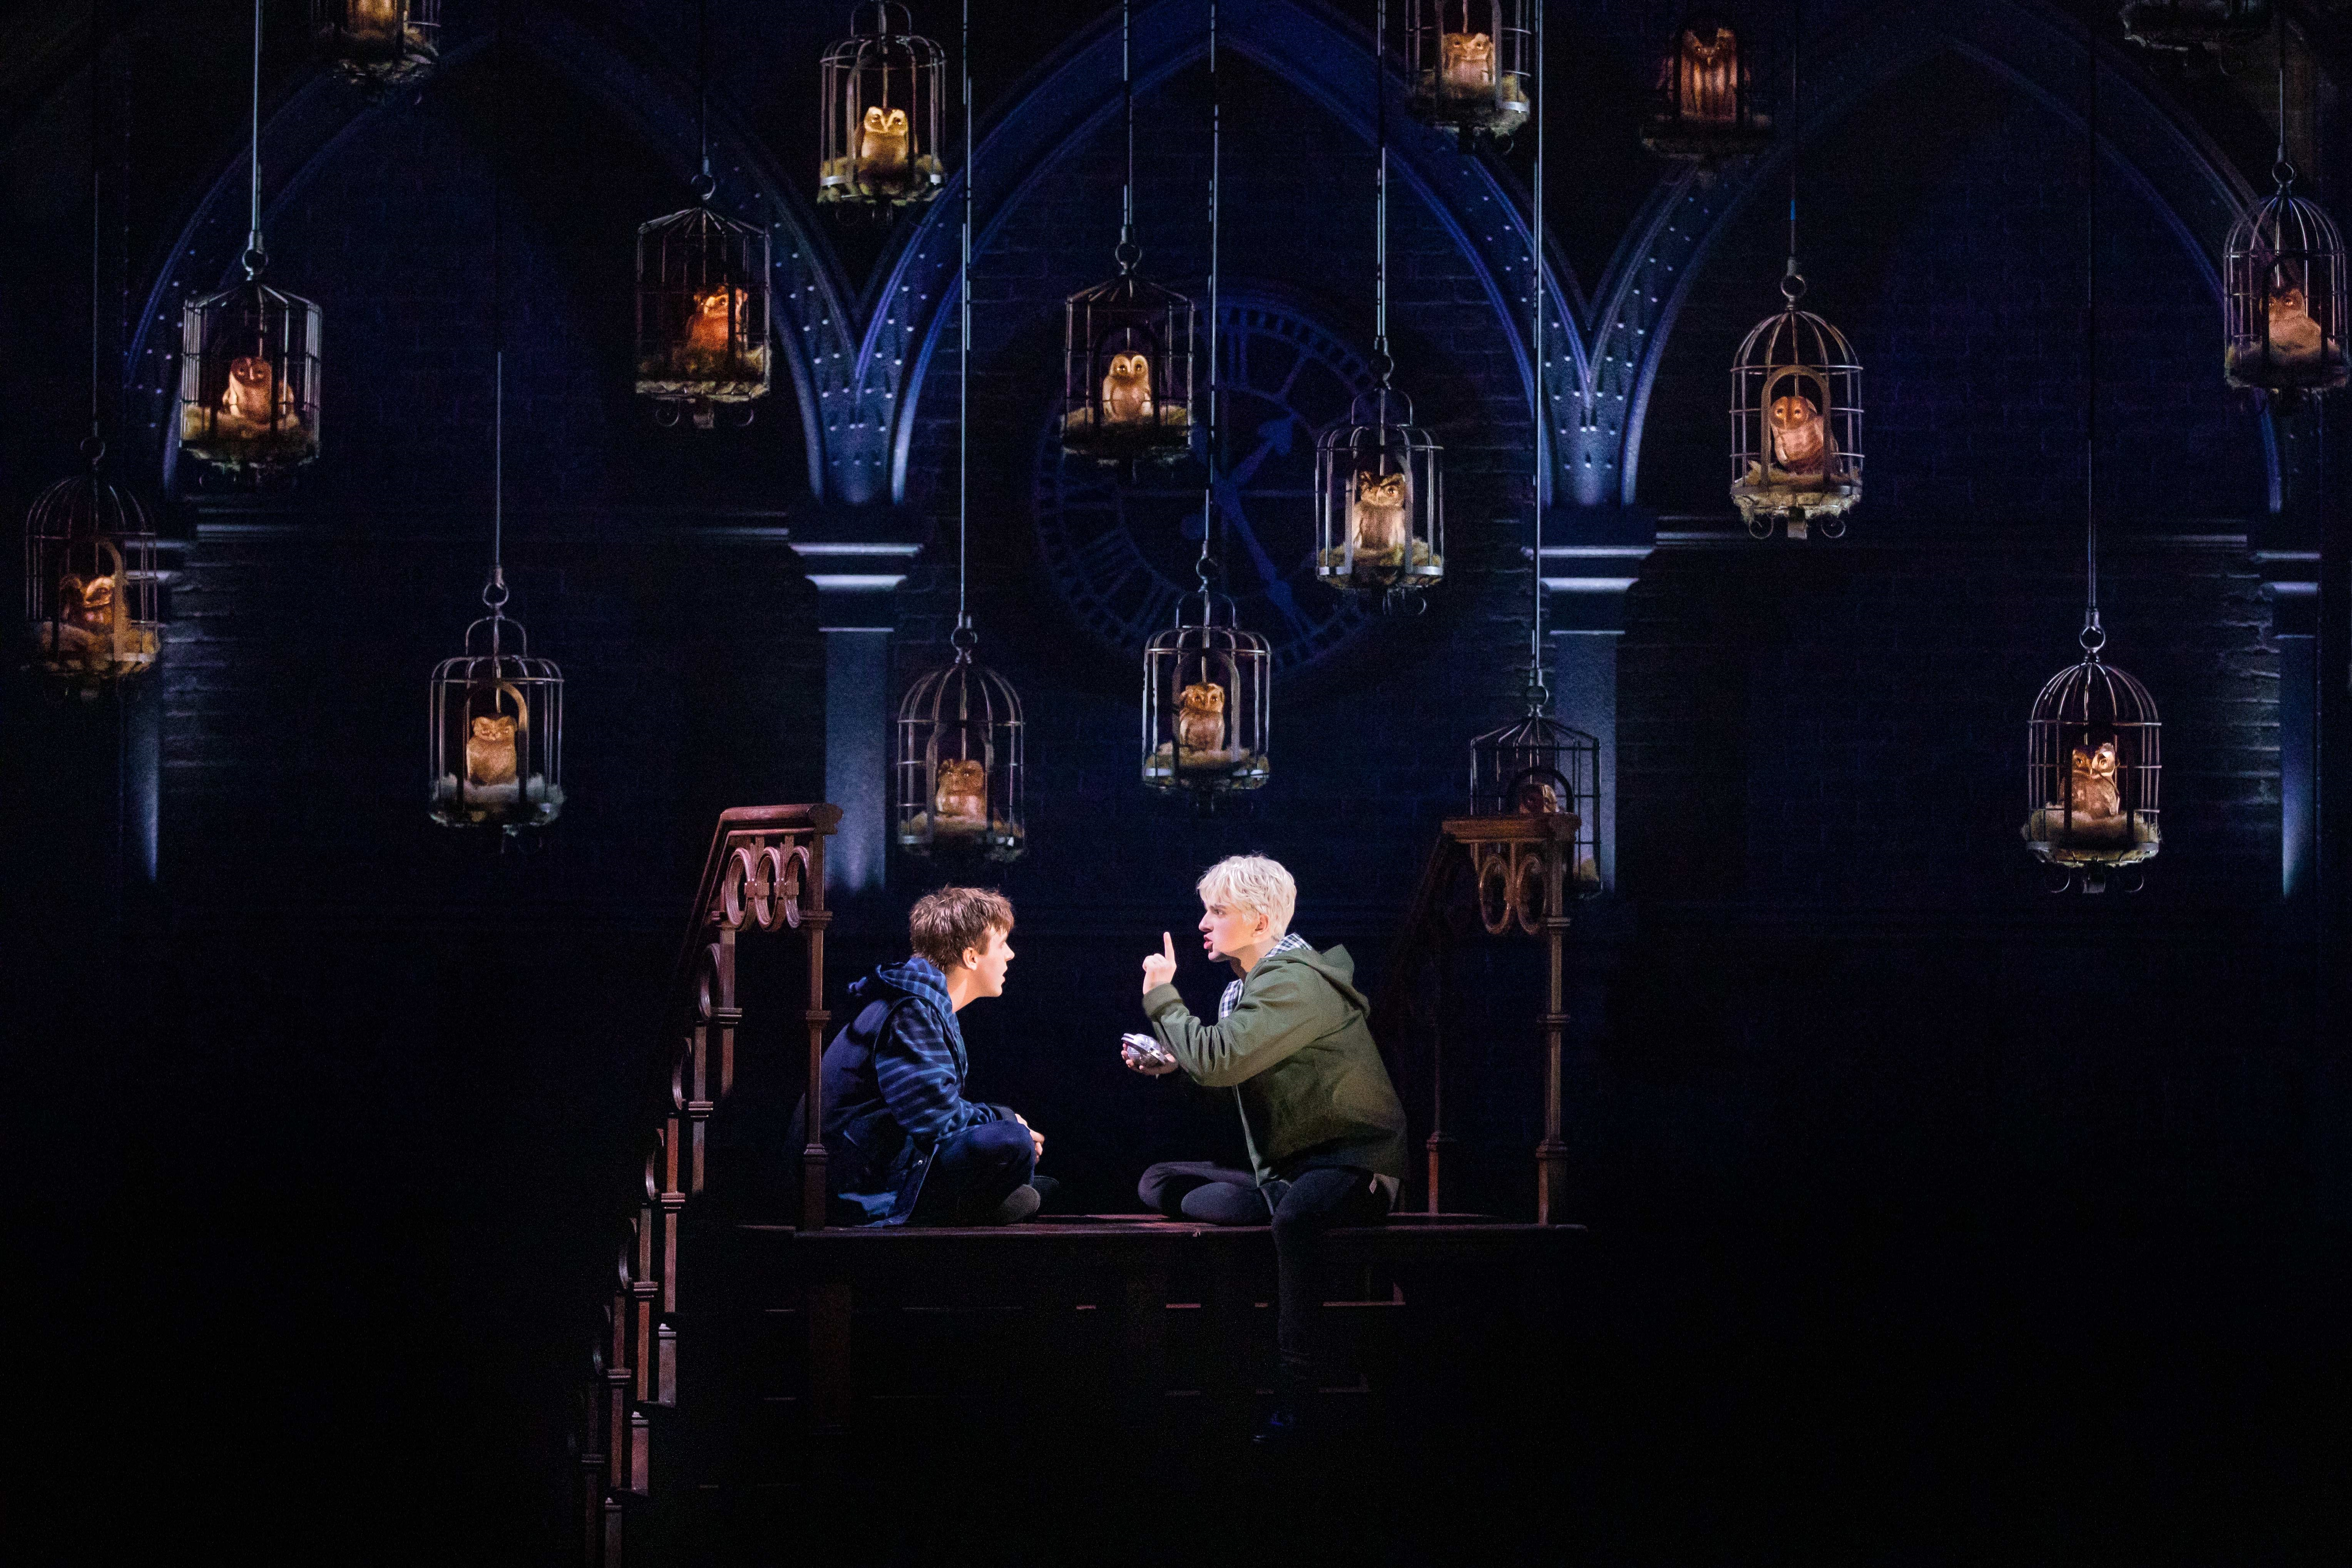 Albus Potter (Sean Rees-Wemyss) and Scorpius Malfoy (Wiliam McKenna) talk things over in the owlery.